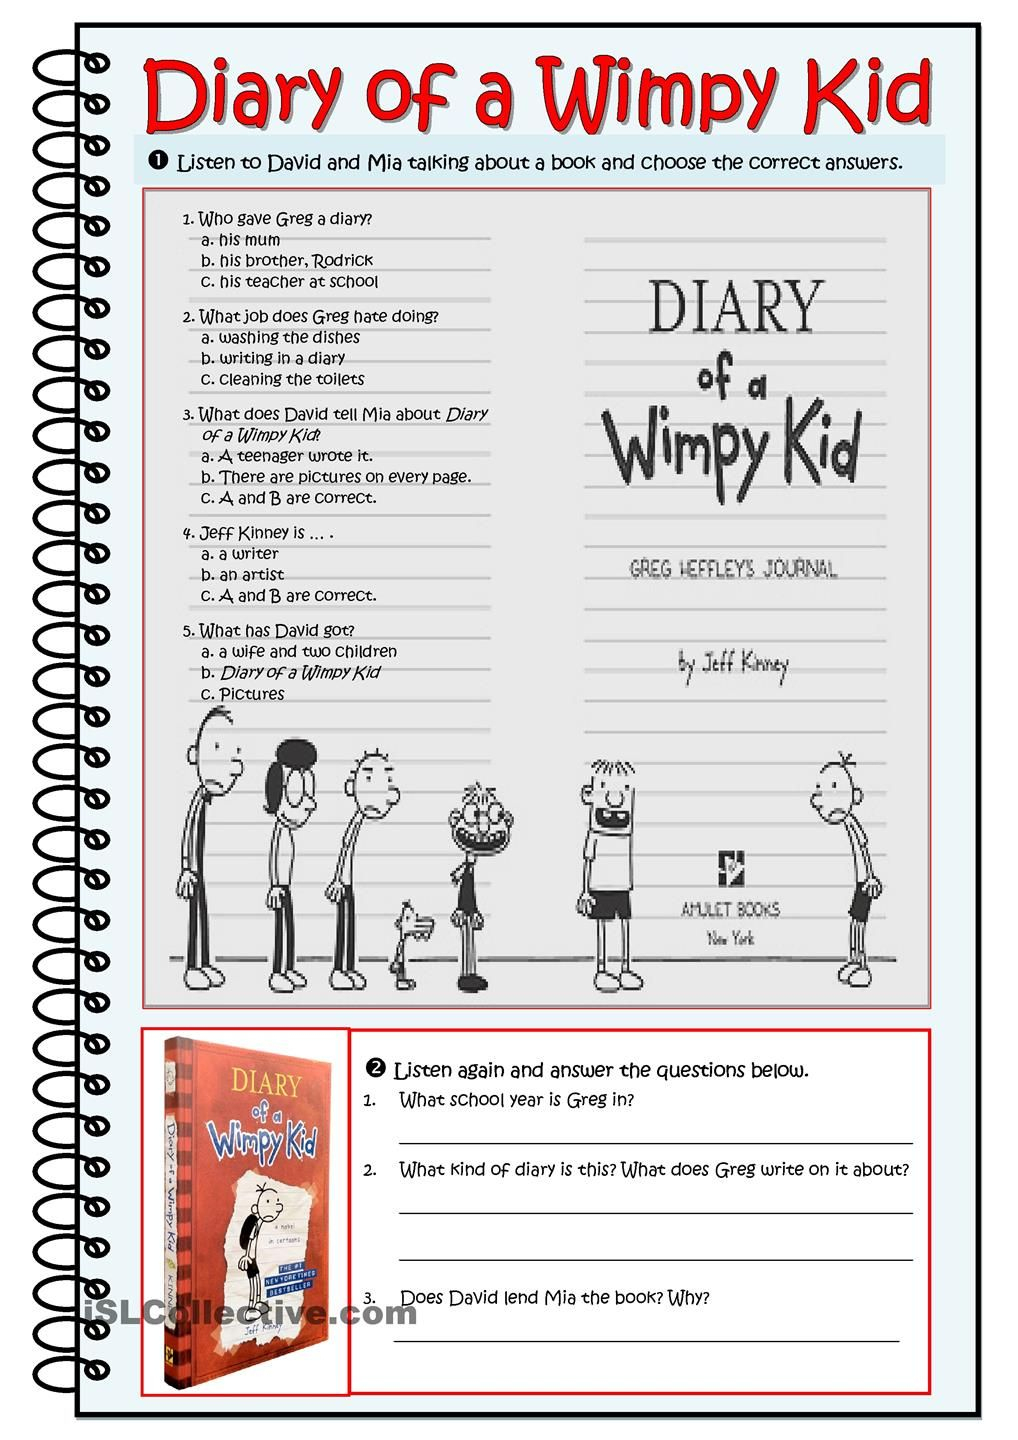 Diary Of A Wimpy Kid- Worksheet | Esl | Wimpy Kid Books, Wimpy Kid | Diary Of A Wimpy Kid Printable Worksheets